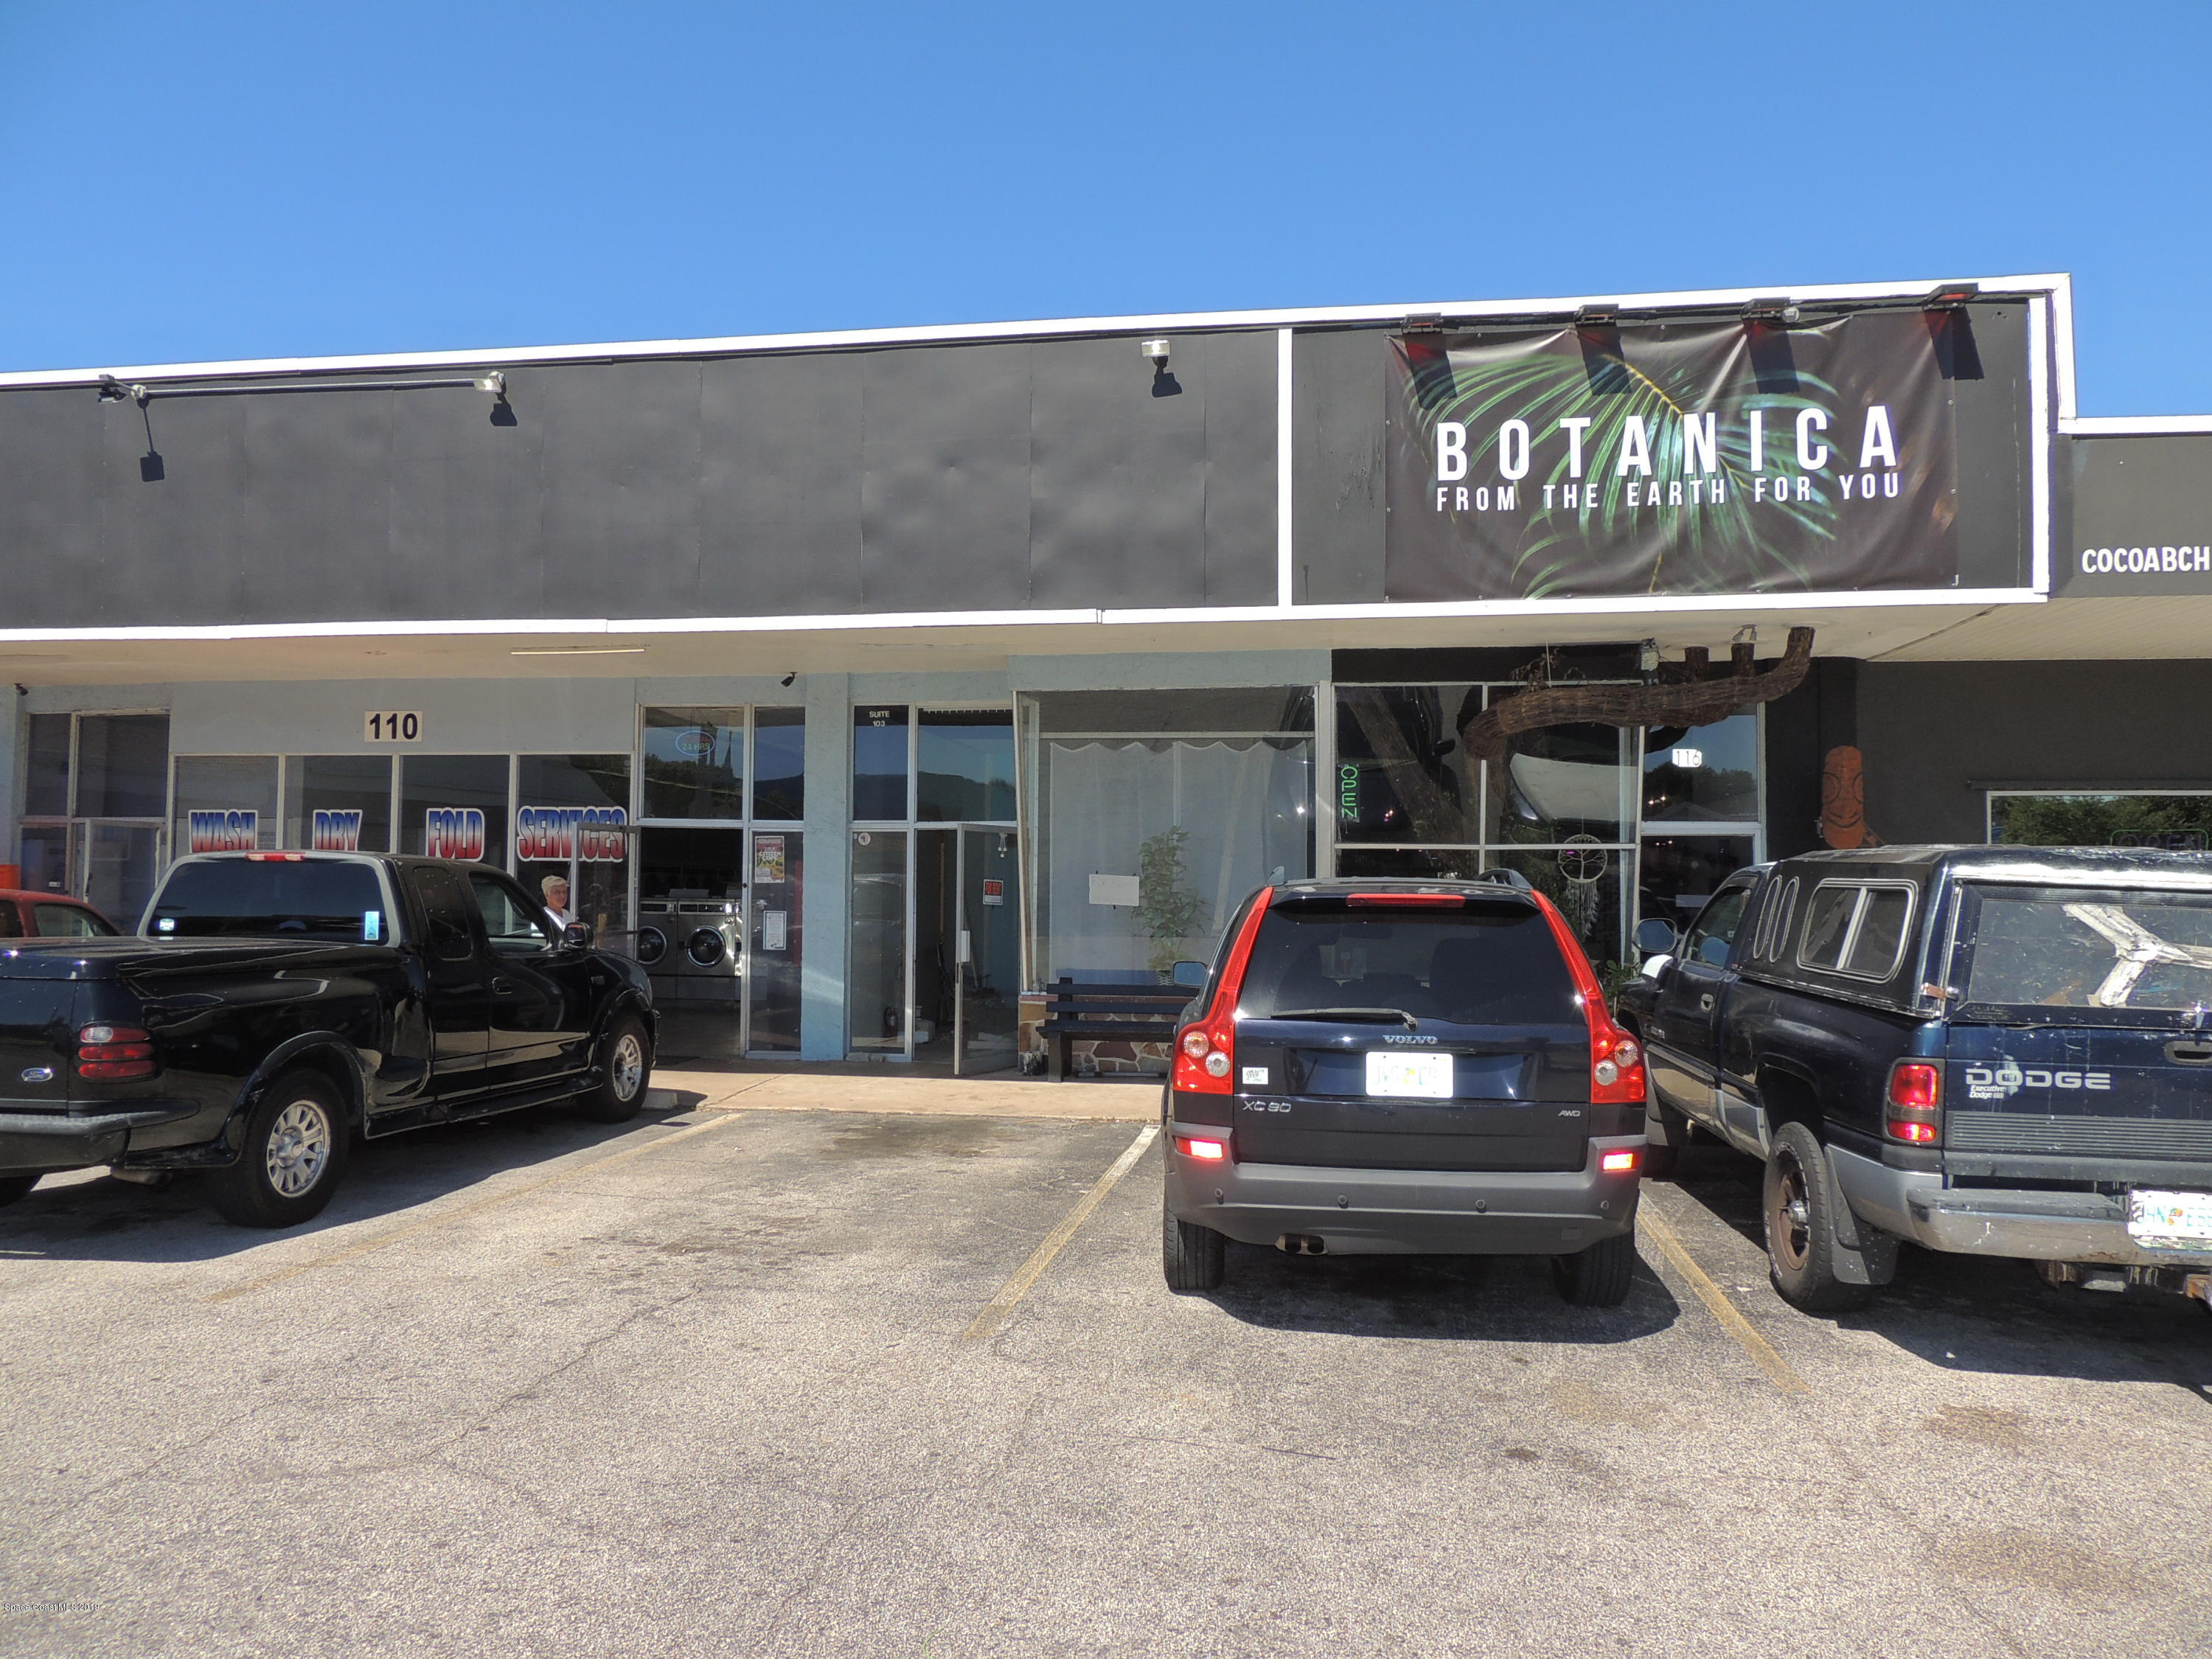 Commercial for Rent at 110 N Orlando Cocoa Beach, Florida 32931 United States